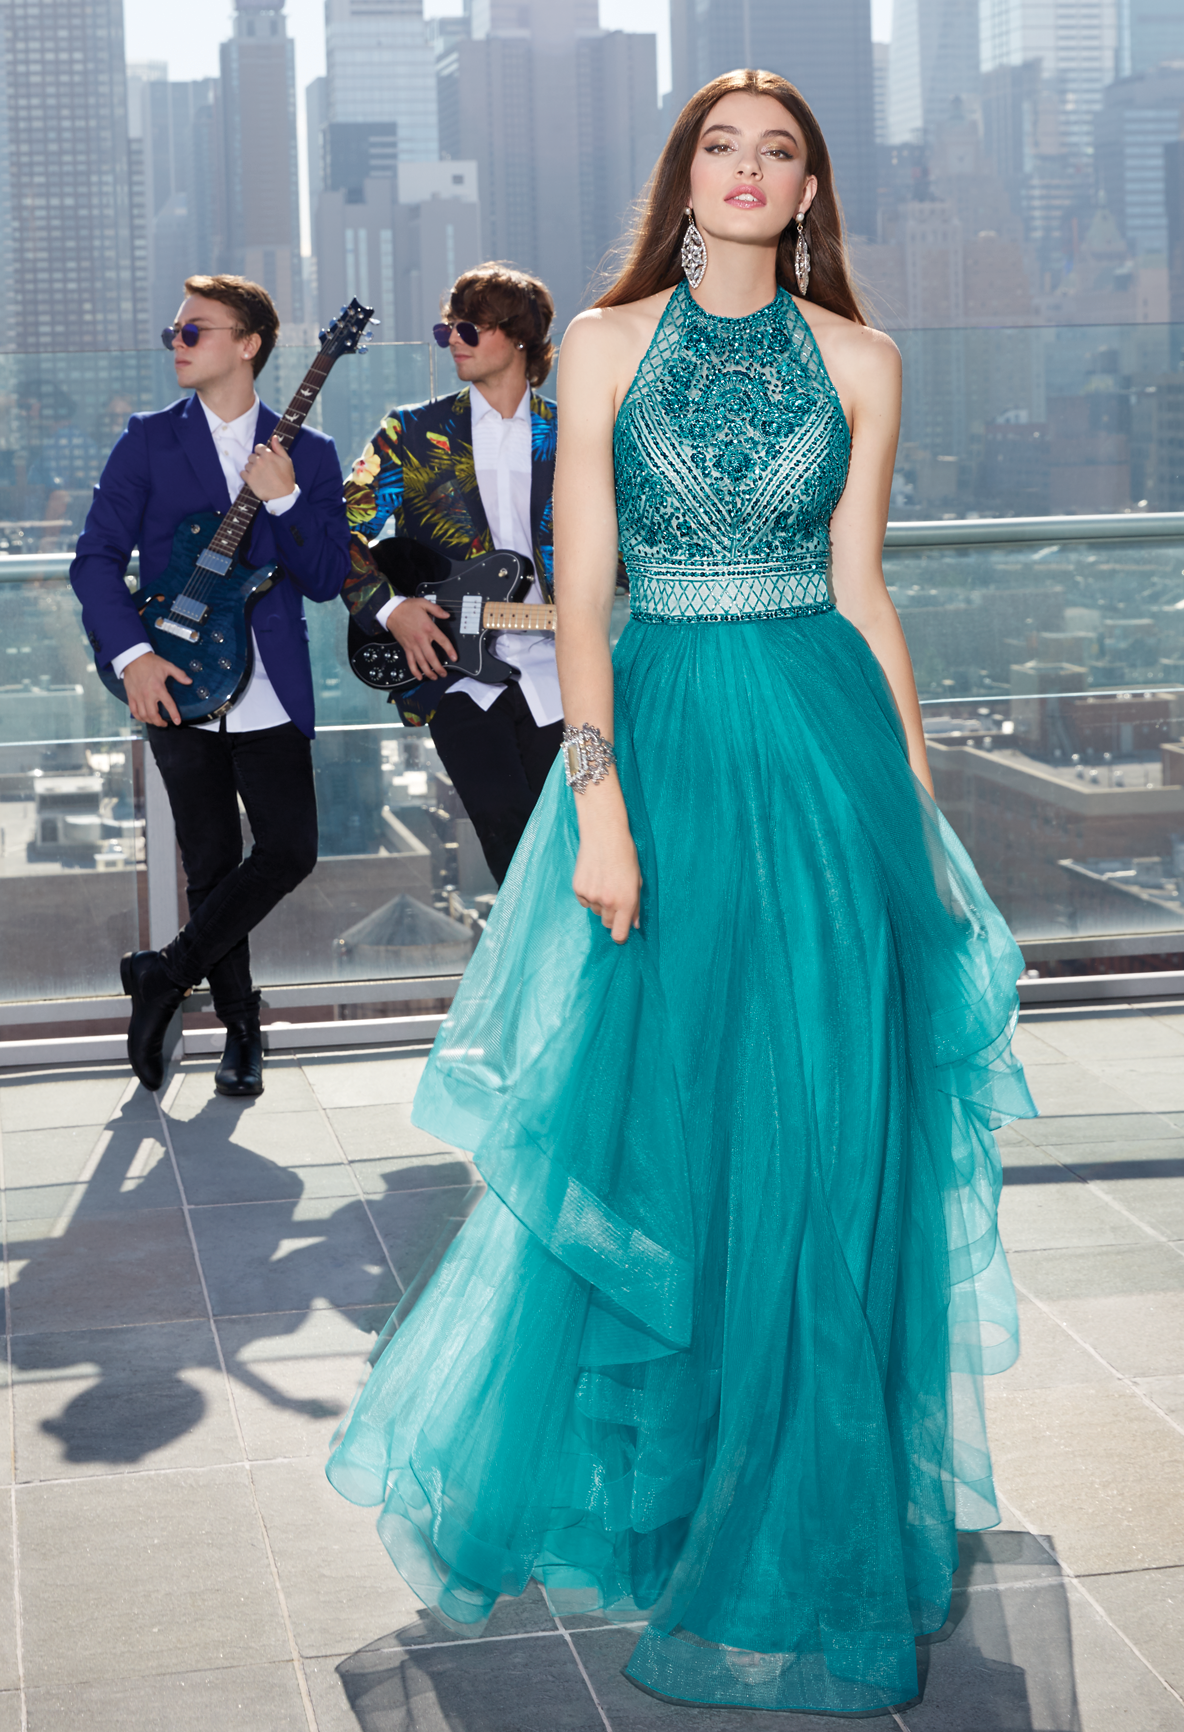 This phenomenal ball gown dress is truly one of a kind according to ...